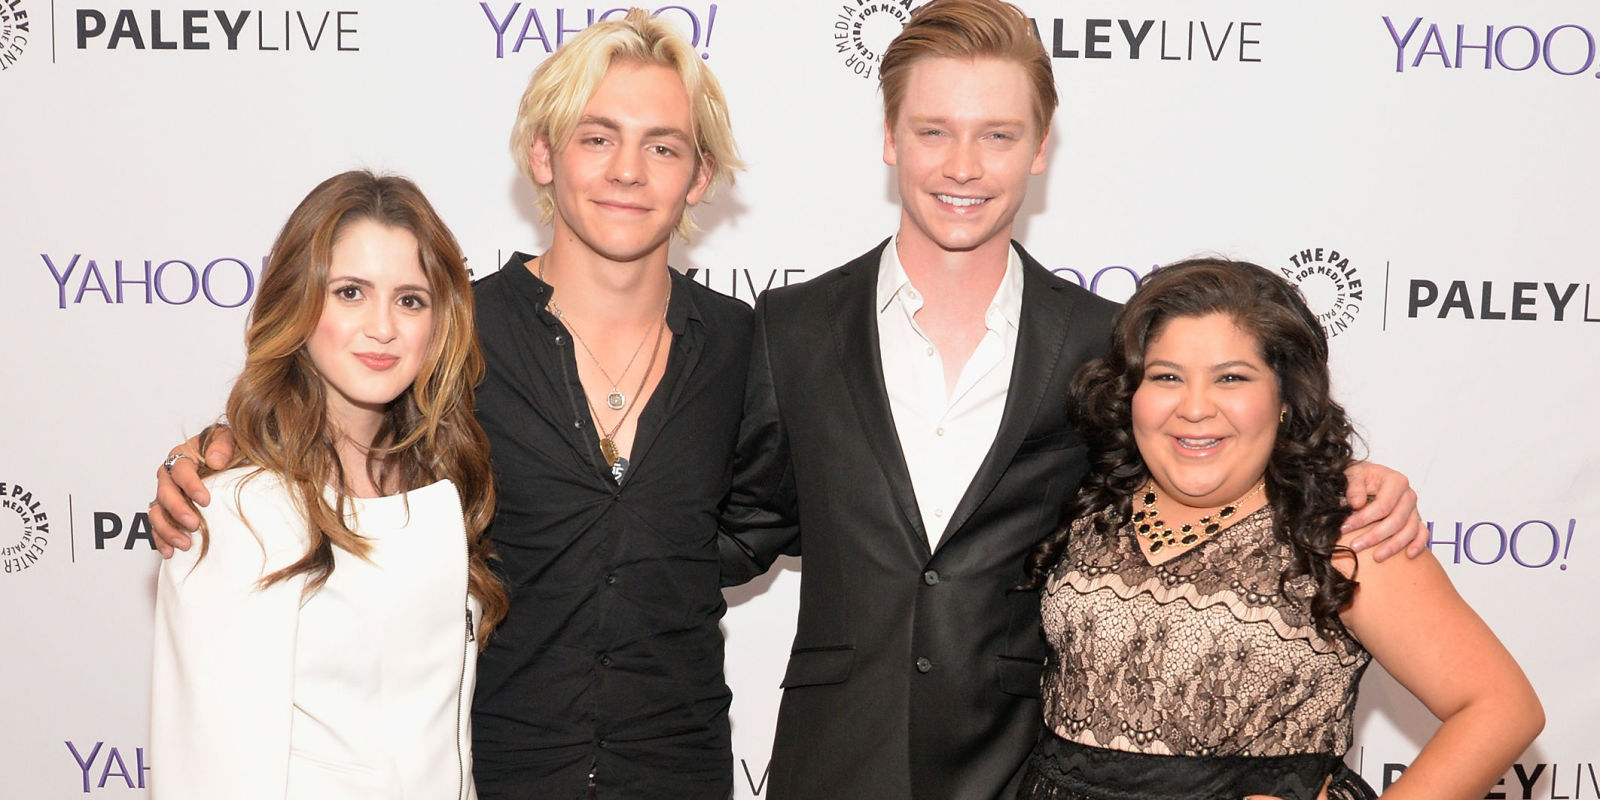 austin and ally dating again after widowed